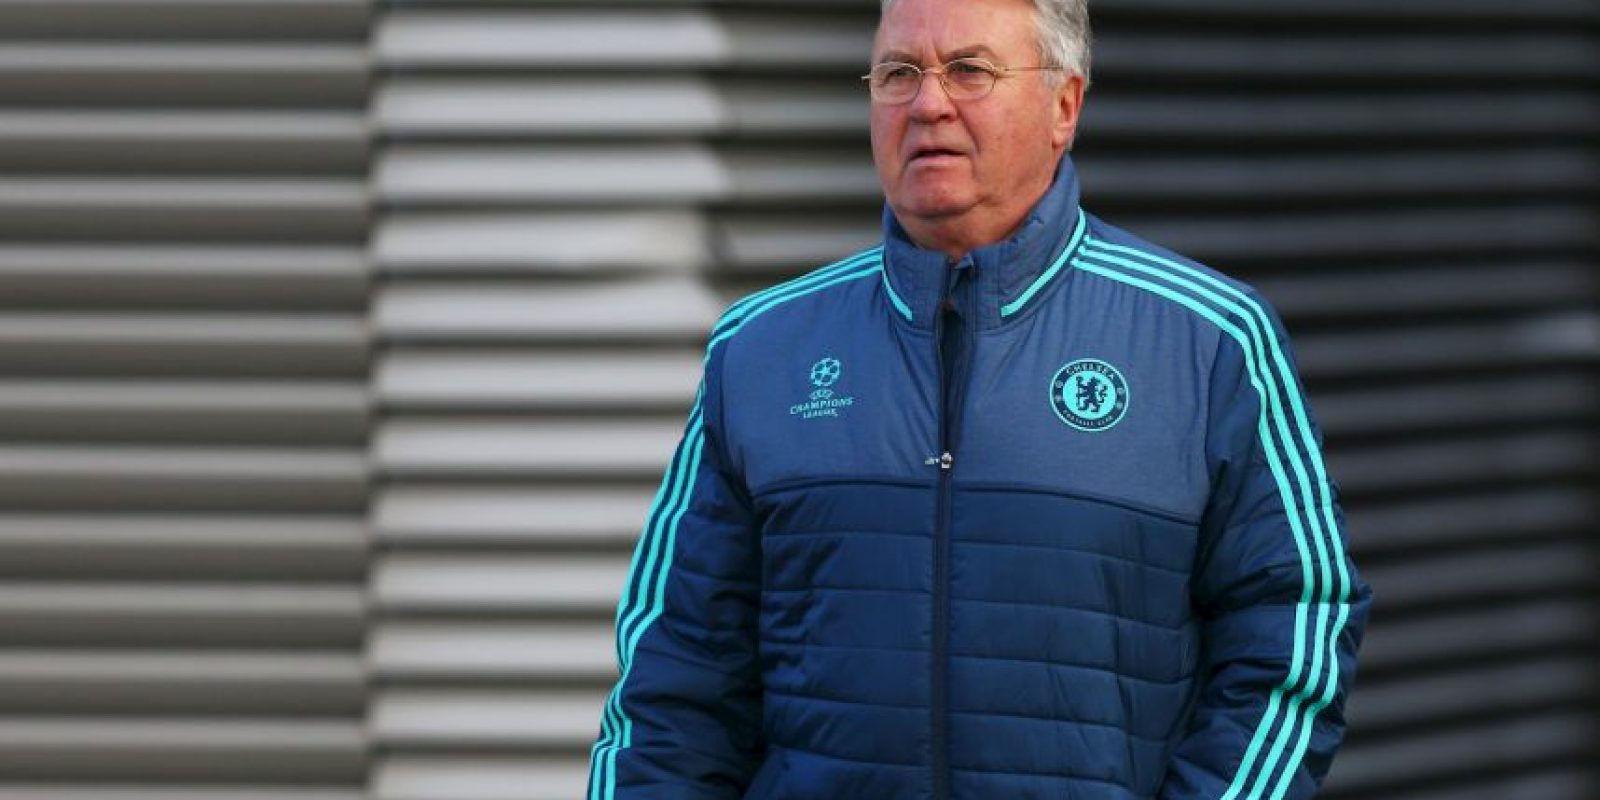 Chelsea no pierde desde la llegada al timón de Guus Hiddink Foto: Getty Images